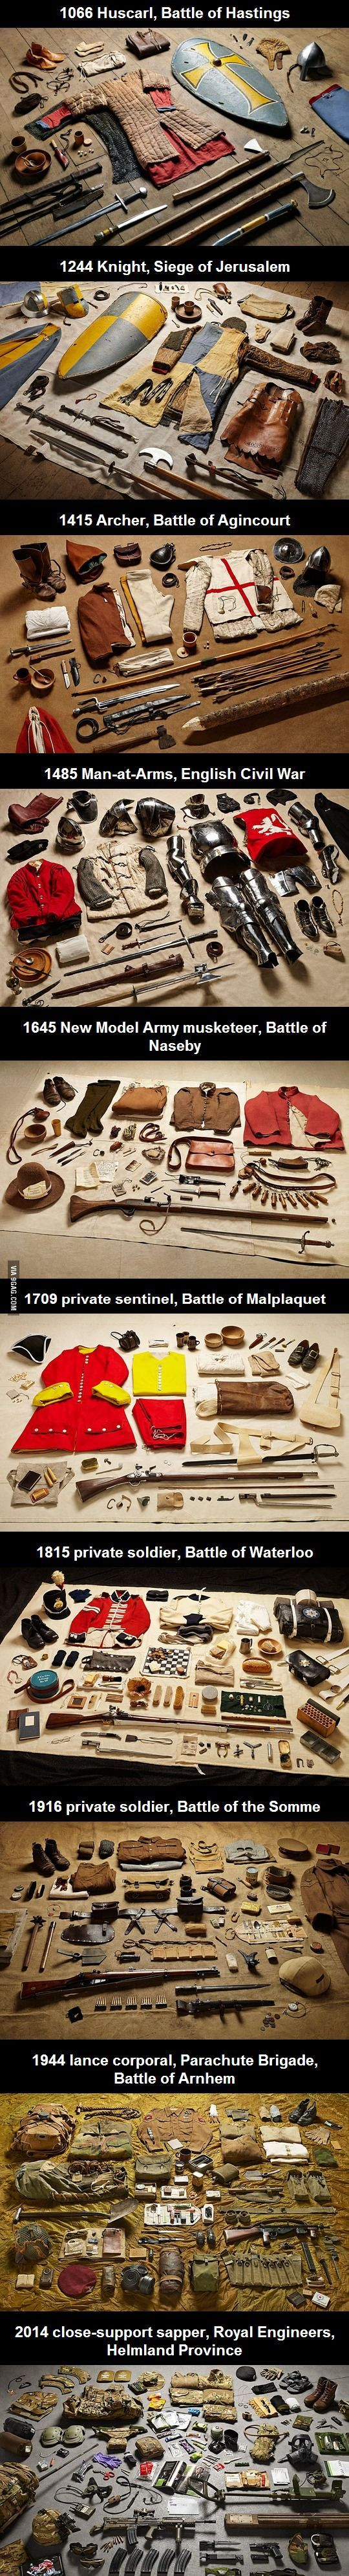 Historical Military Uniforms from the last 1,000 years